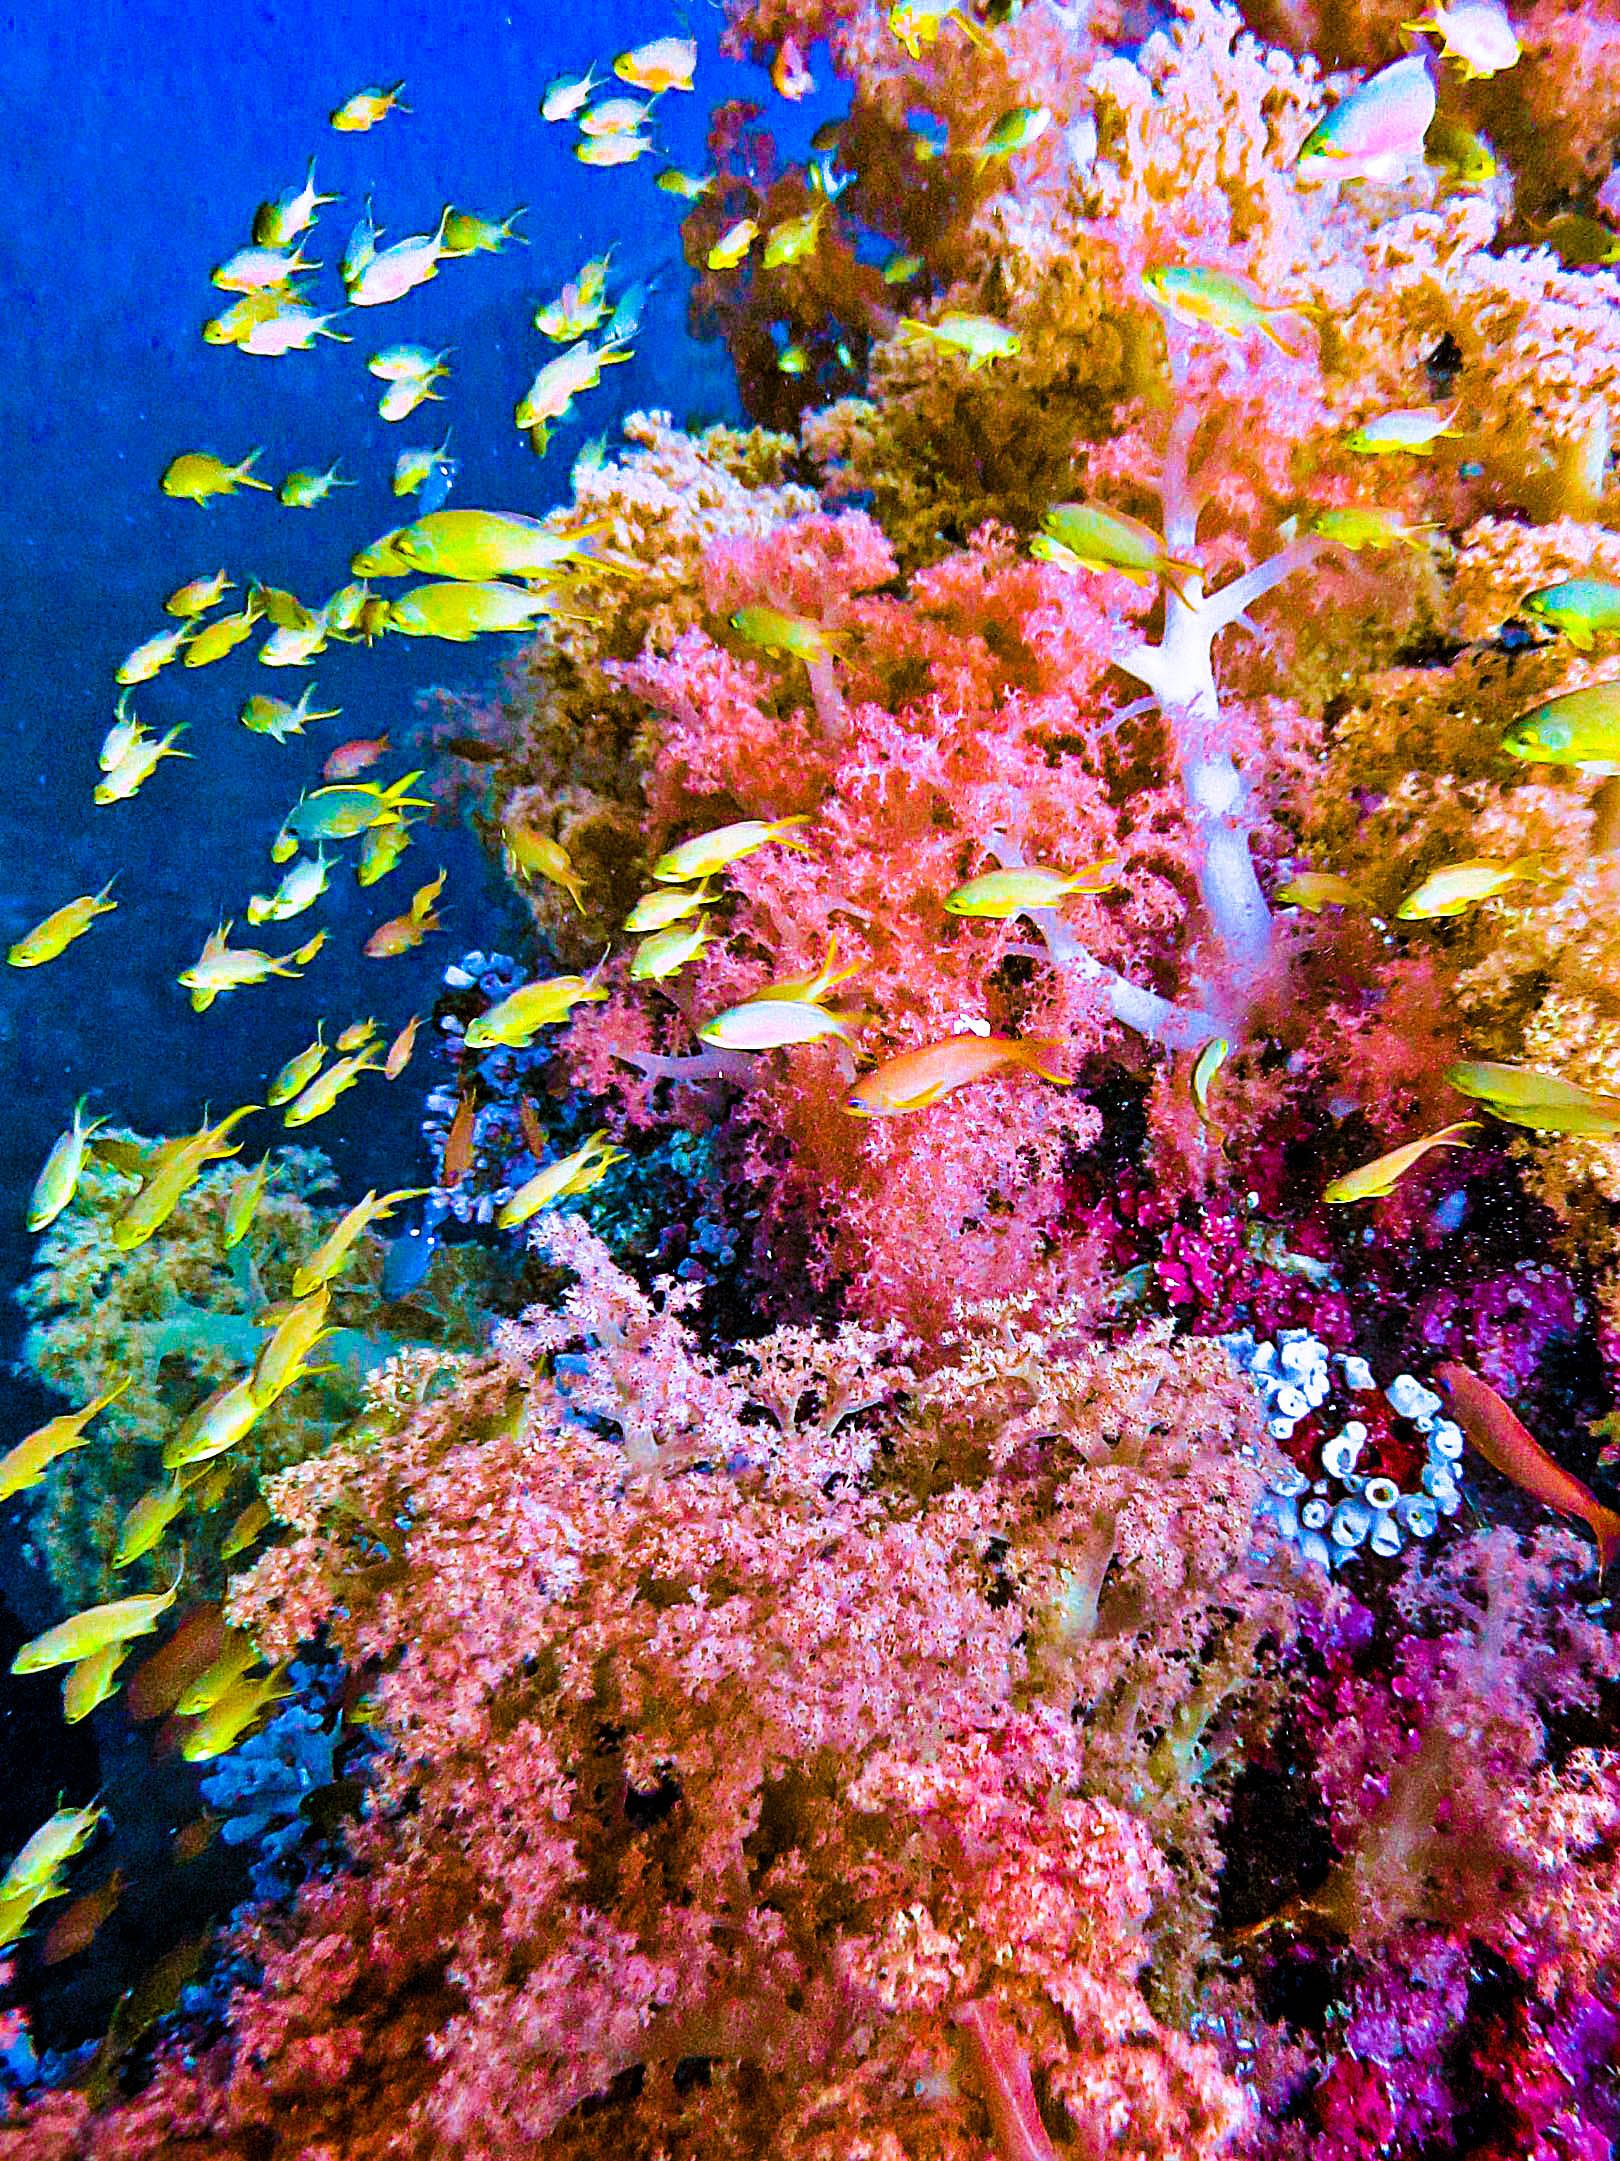 Numerous colorful tropical reef fishes swim about colorful coral formations in one of the top dive sites in the Philippines